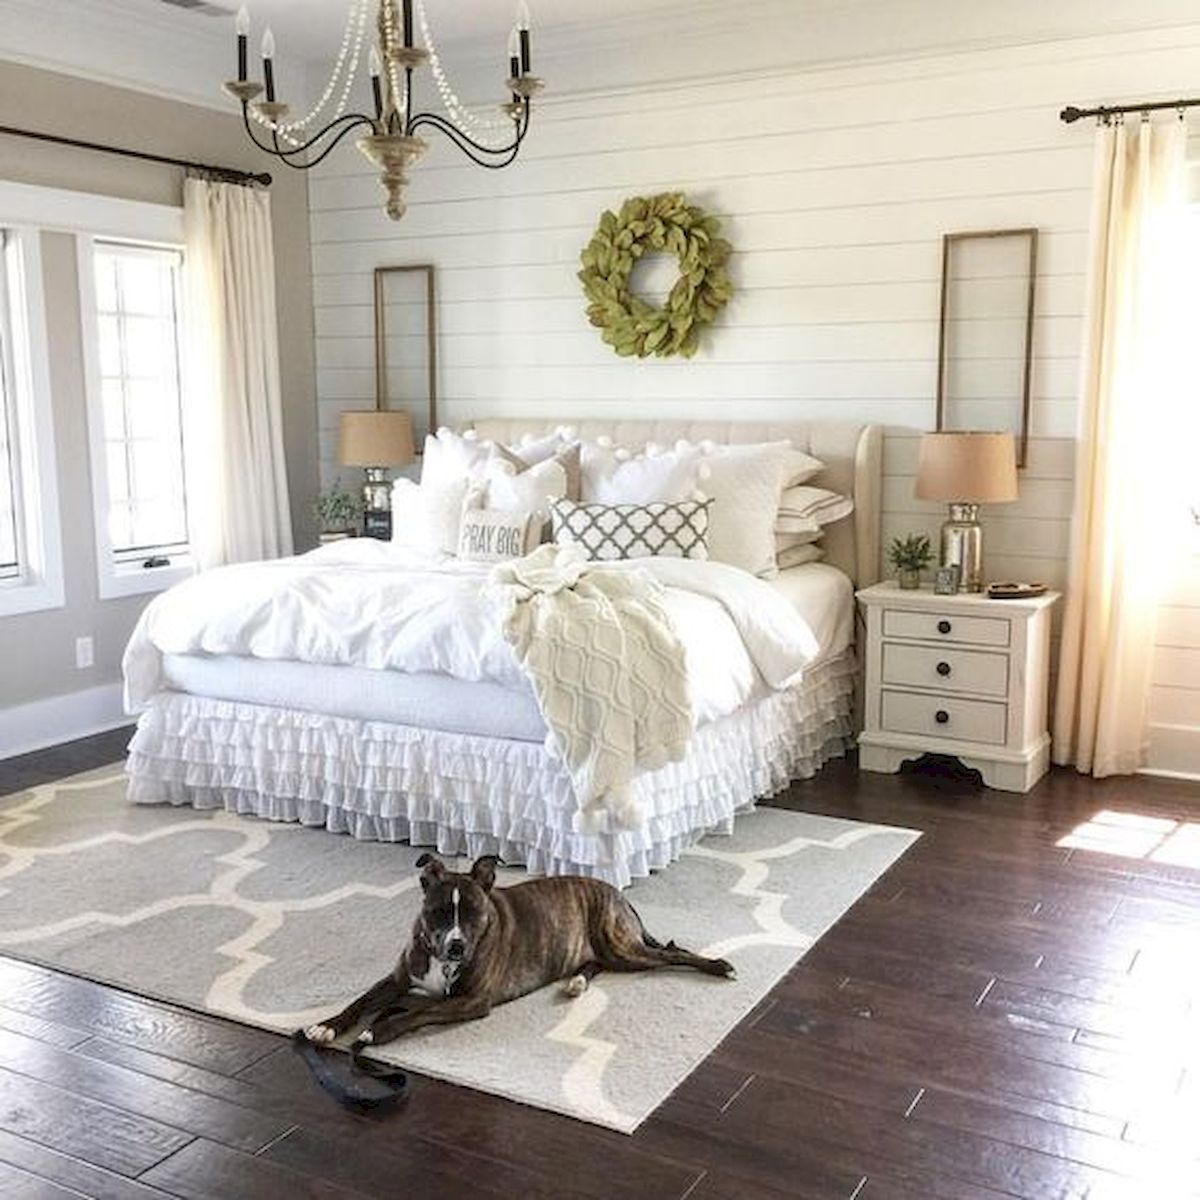 60 Adorable Modern Farmhouse Bedroom Design Ideas and Decor images